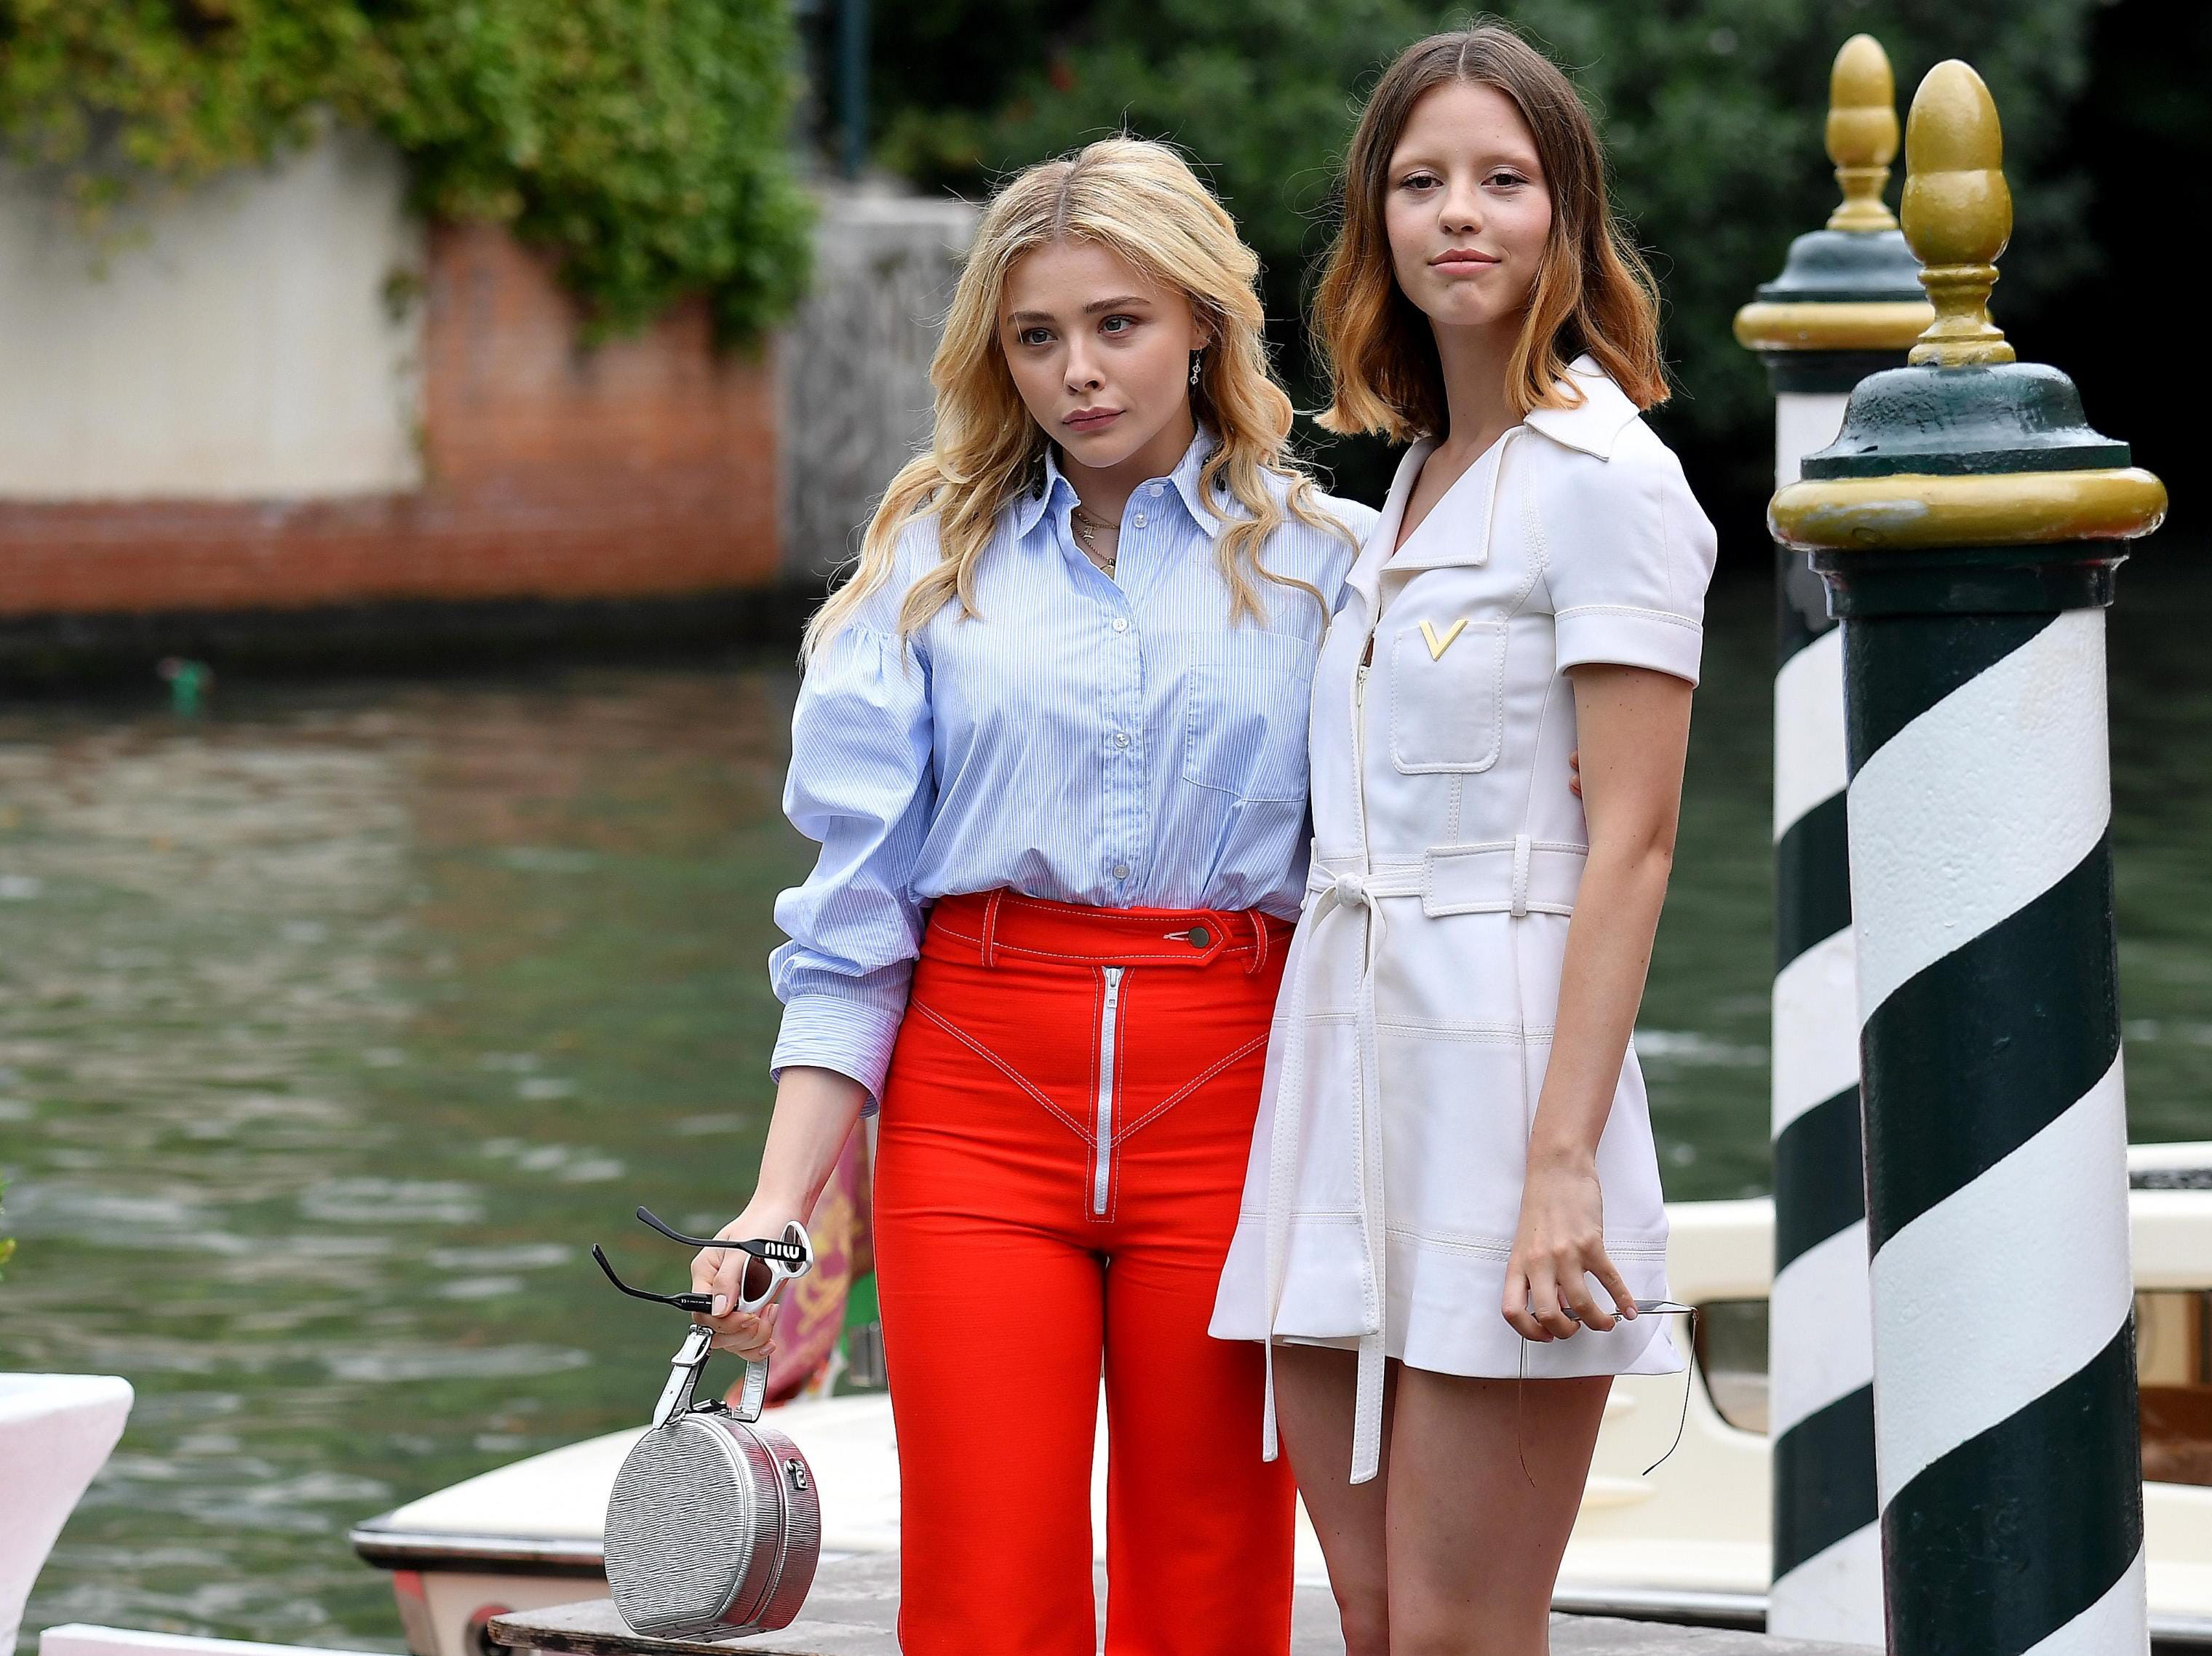 Chloe Grace Moretz and British actress Mia Goth arrive at the Lido Beach together.